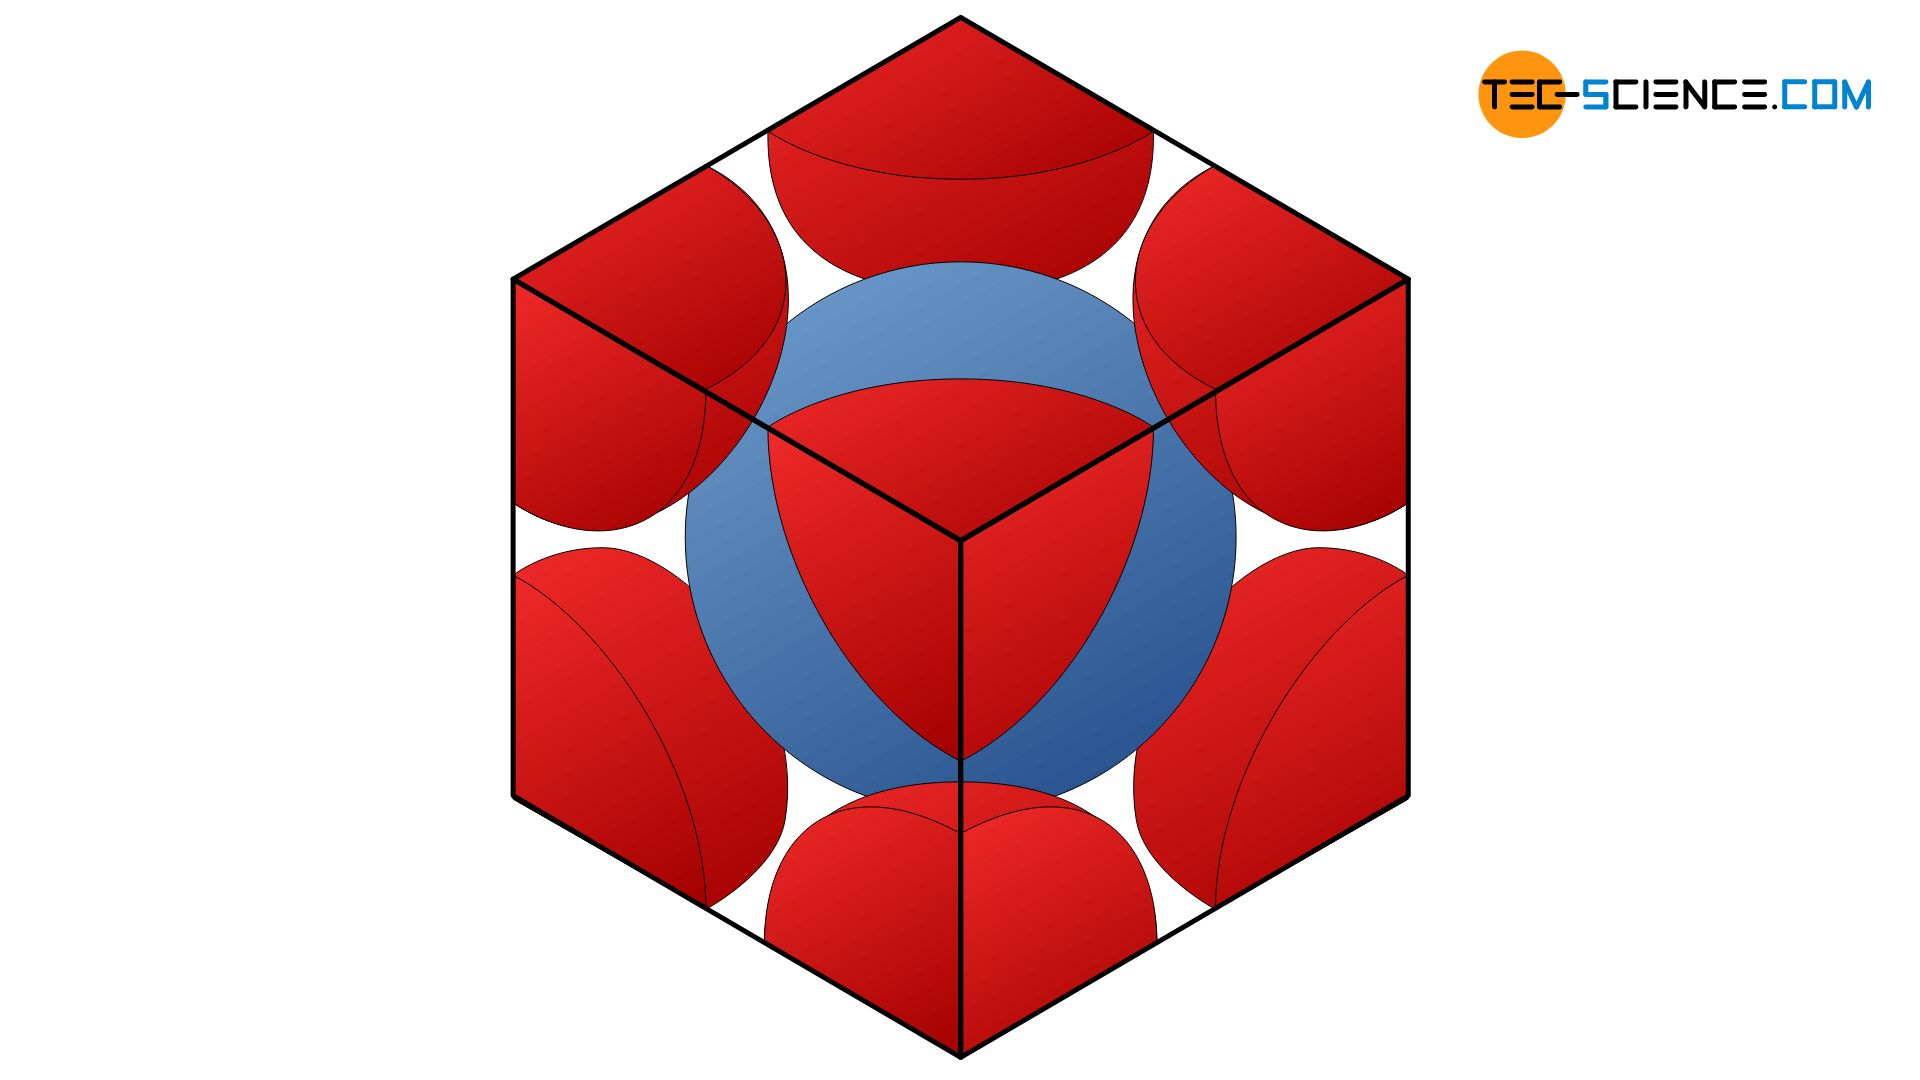 Derivation of the packing density of the body-centered cubic lattice structure (bcc)